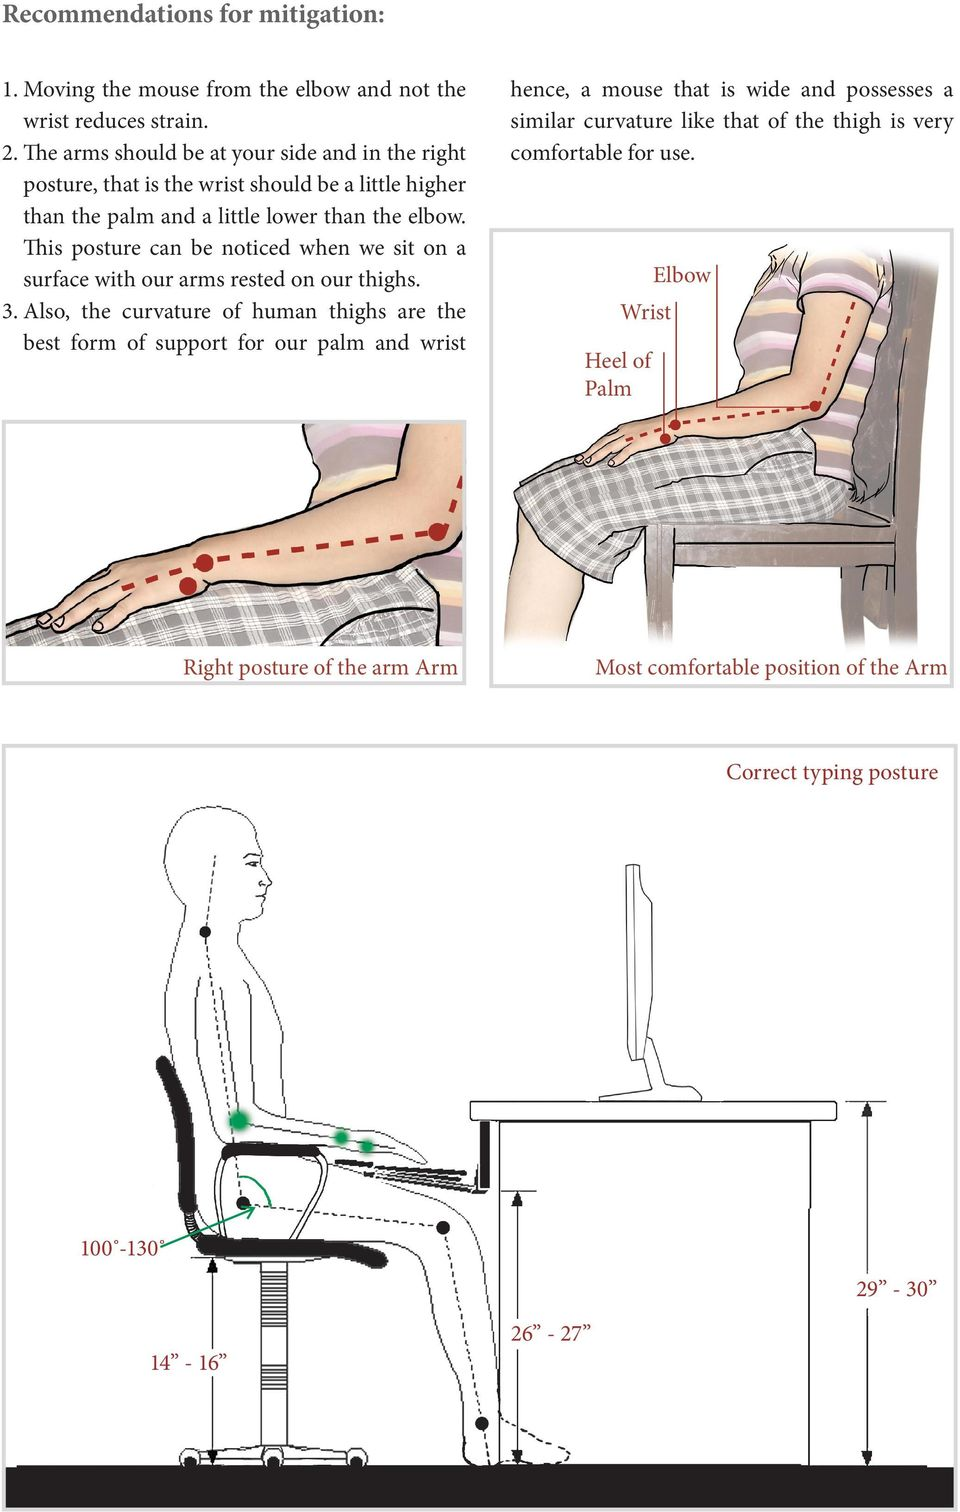 This posture can be noticed when we sit on a surface with our arms rested on our thighs. 3.